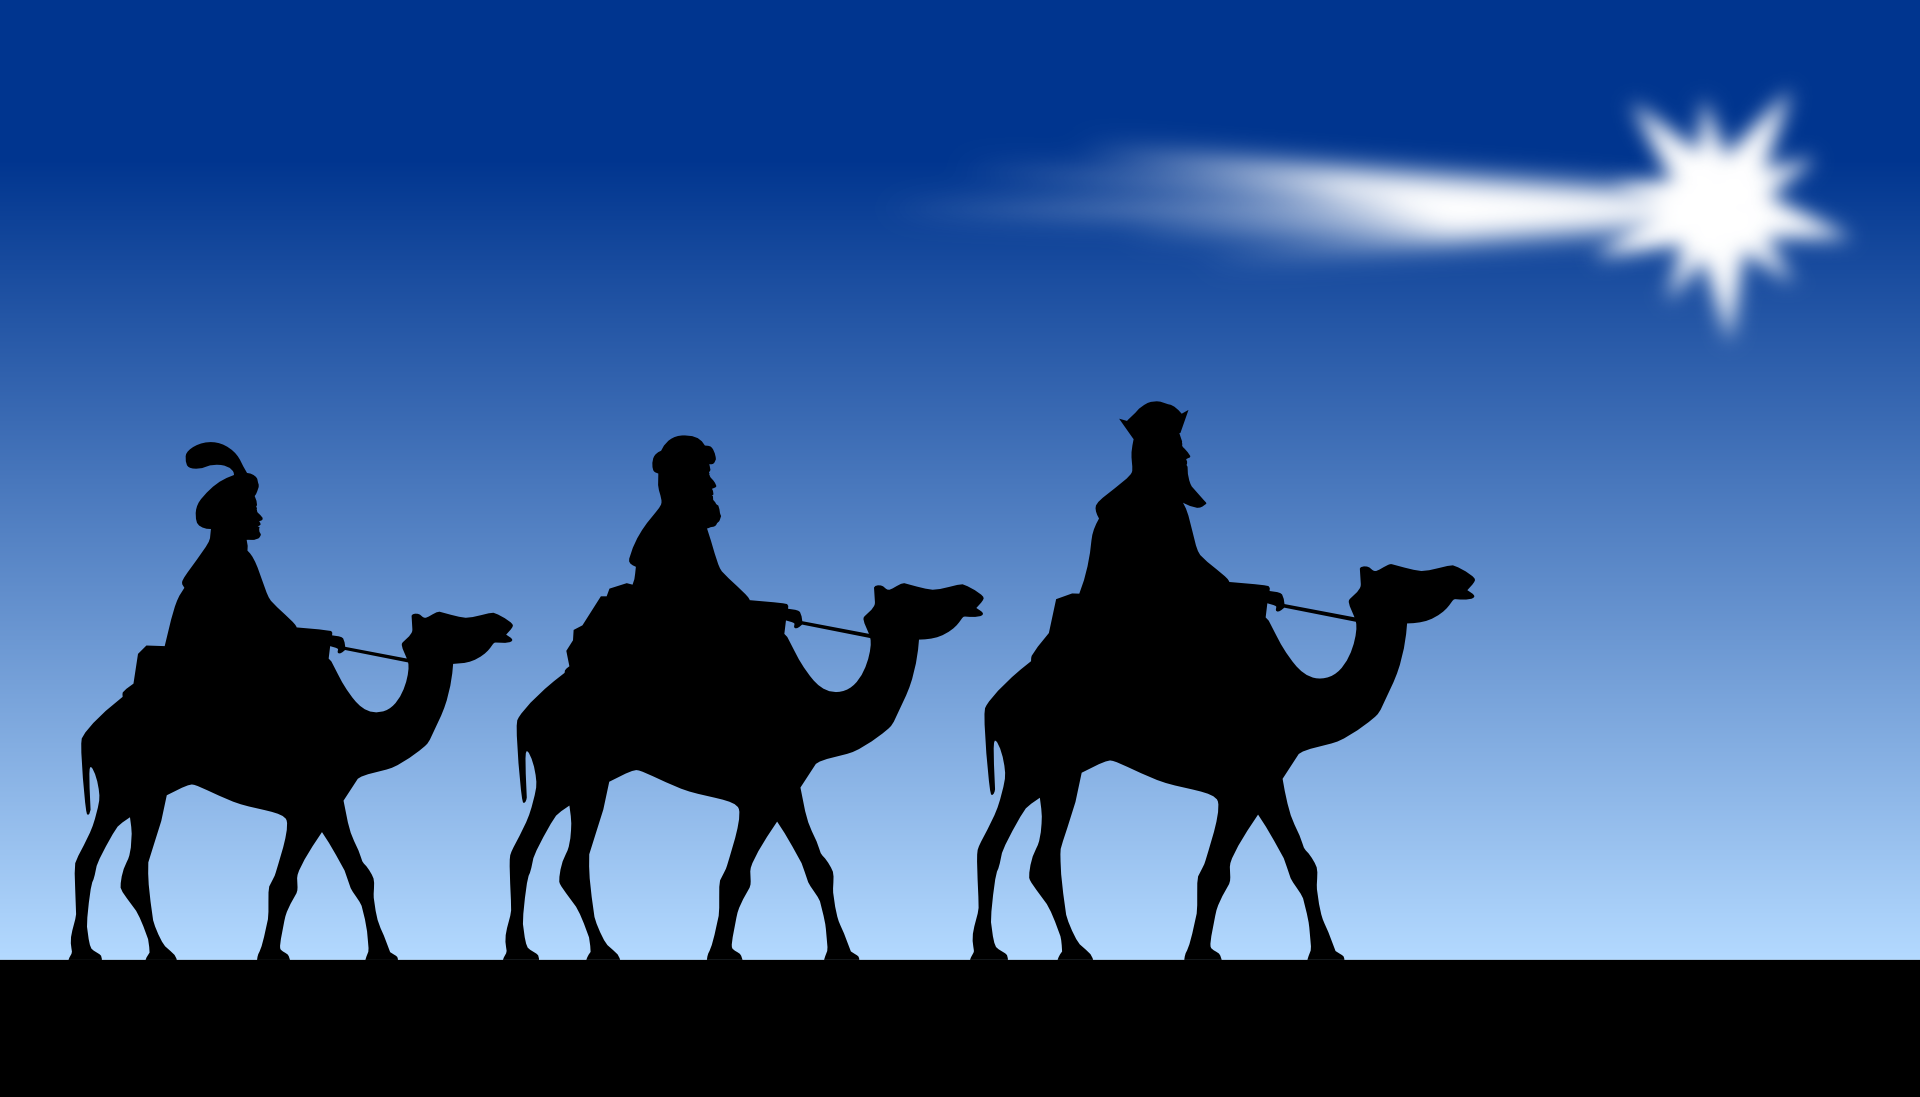 Does the Bible say that three wise men visited Jesus in a stable?